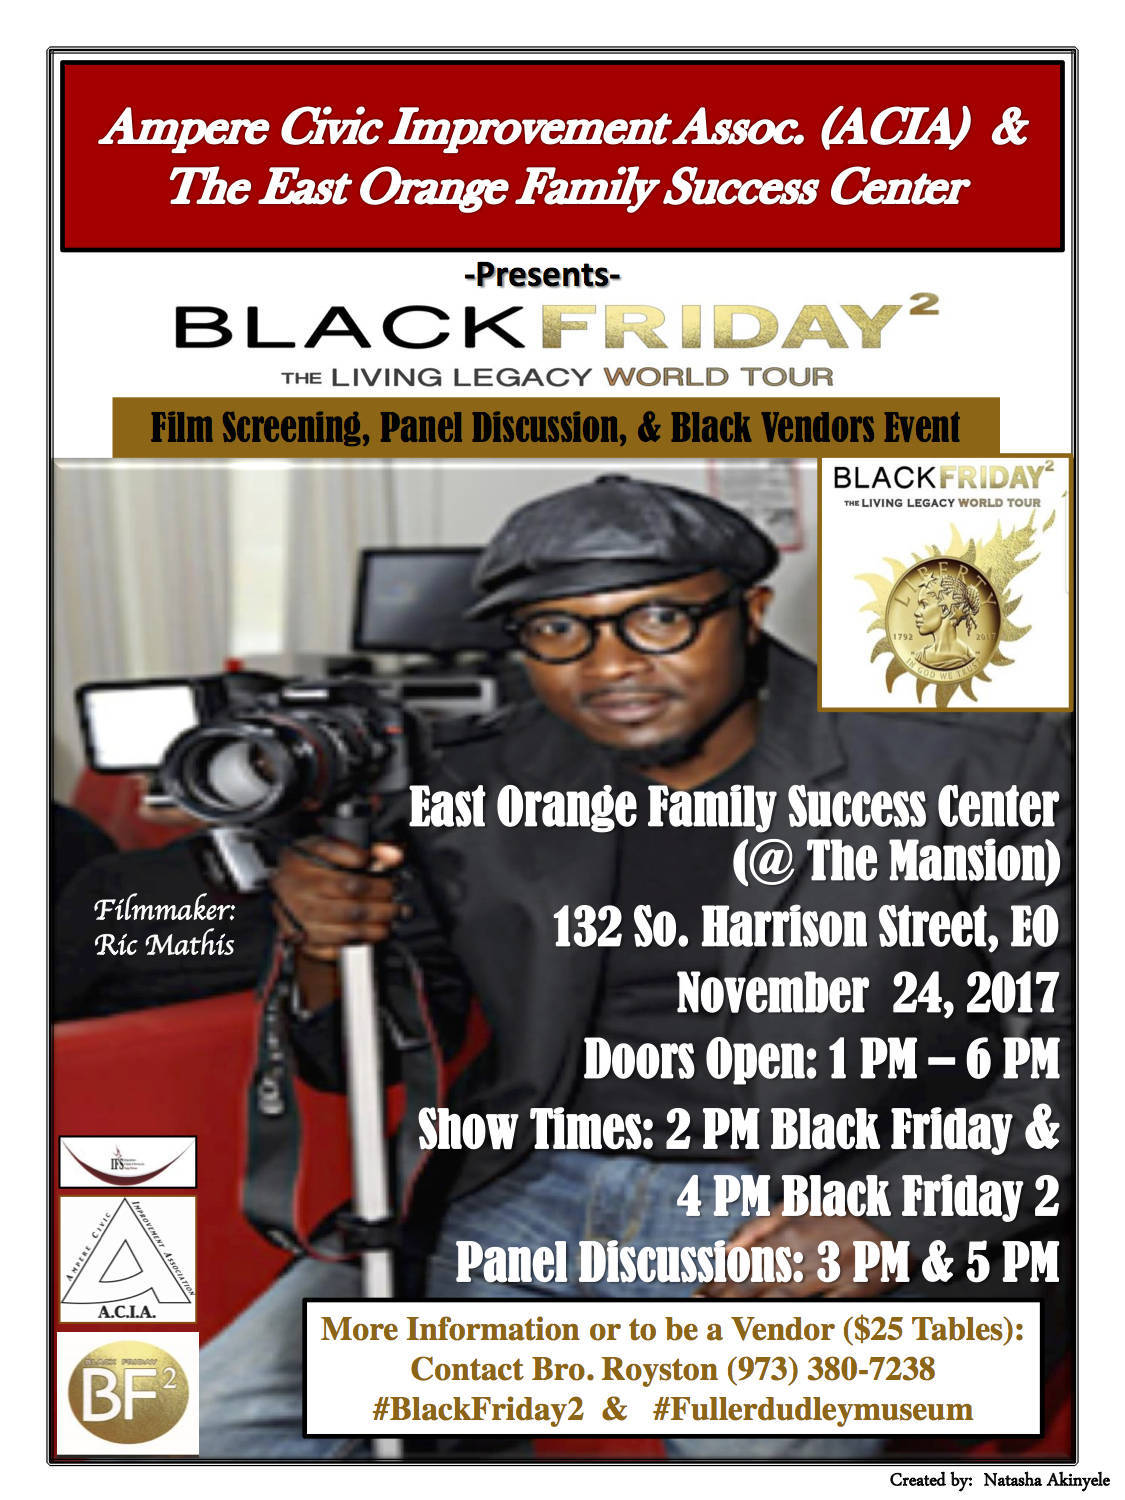 78127b117d024fc26609_Black_Friday_Flyer.jpg